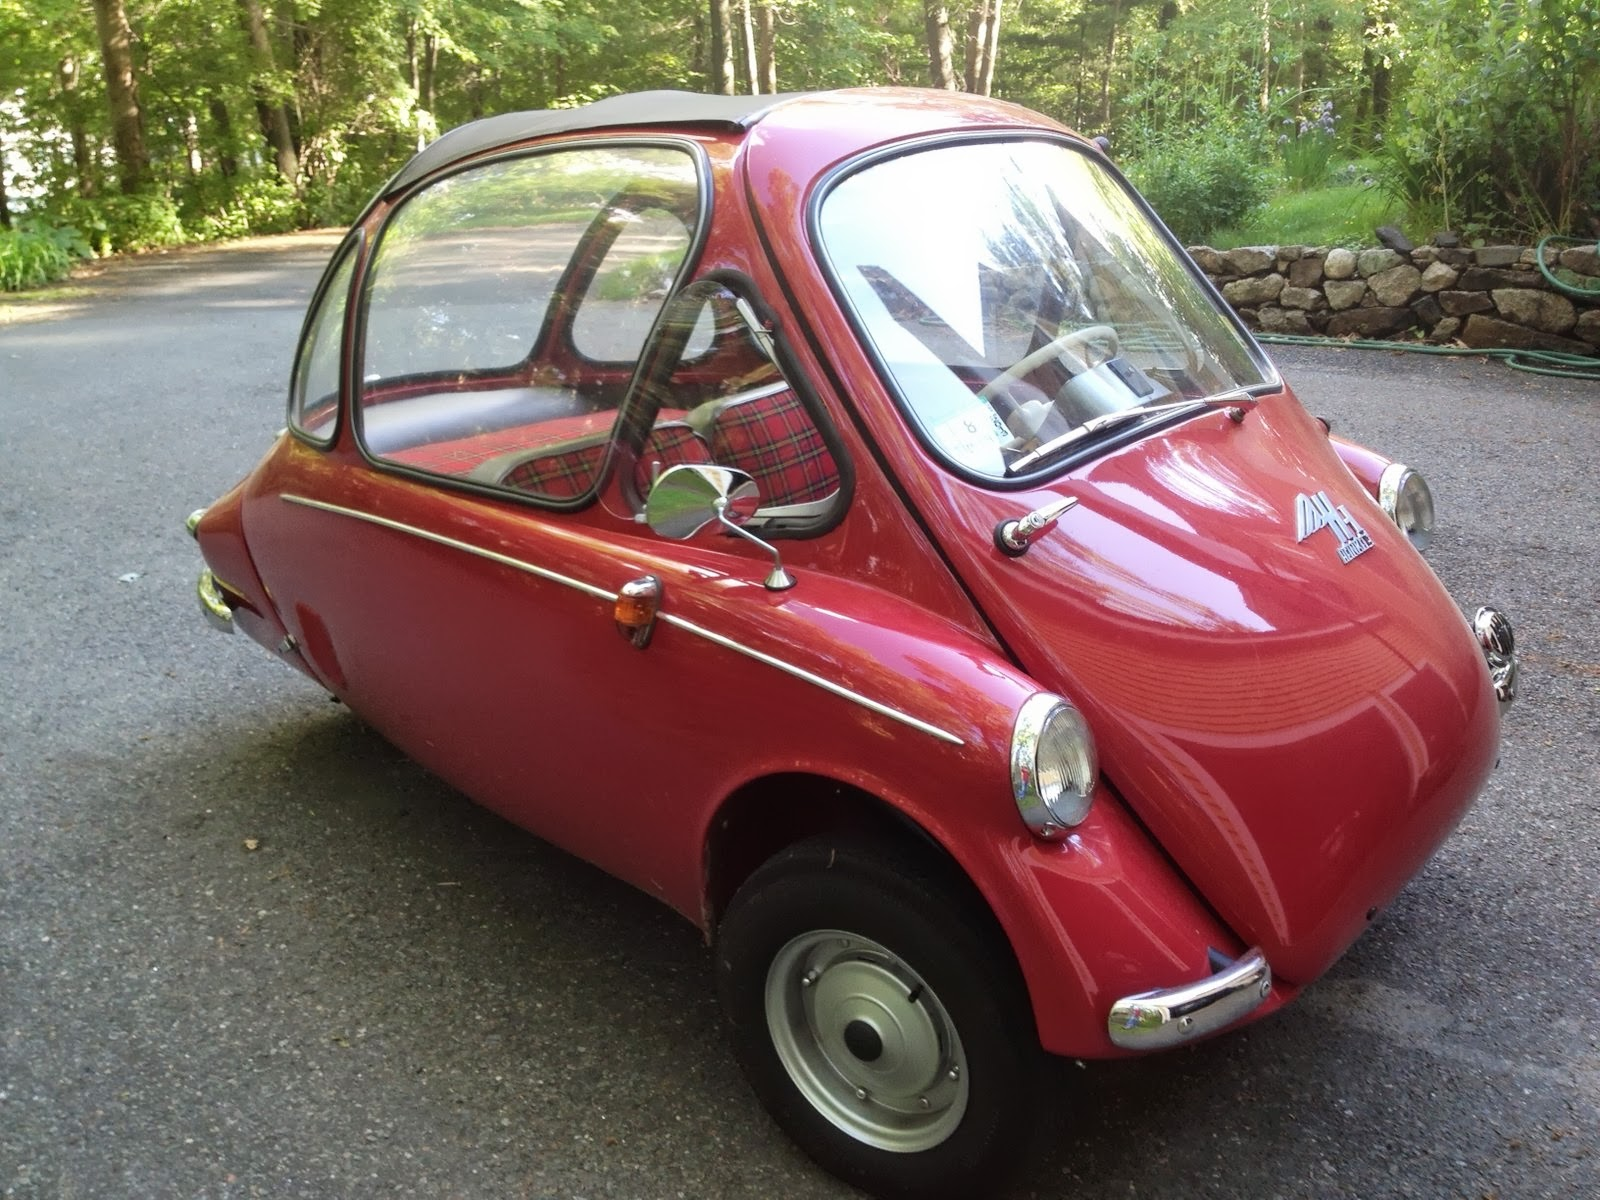 Heinkel Cars And Kabines The Sunroof Was Advertised As A